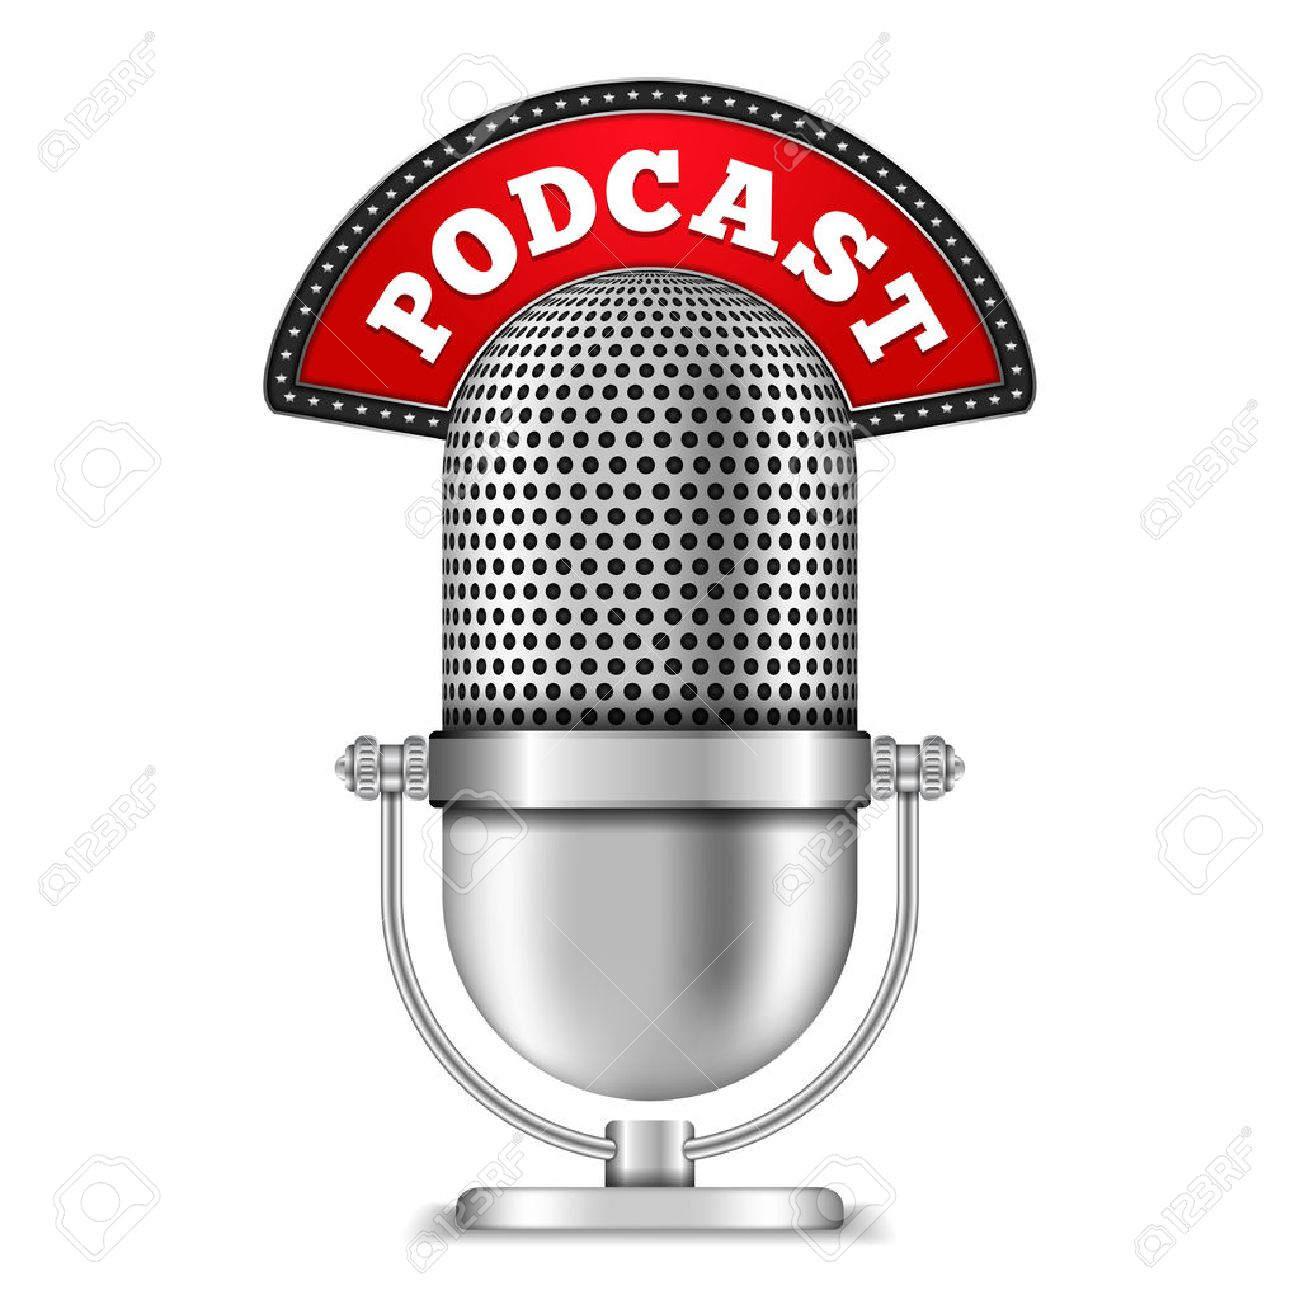 Podcast Microphone Clipart.